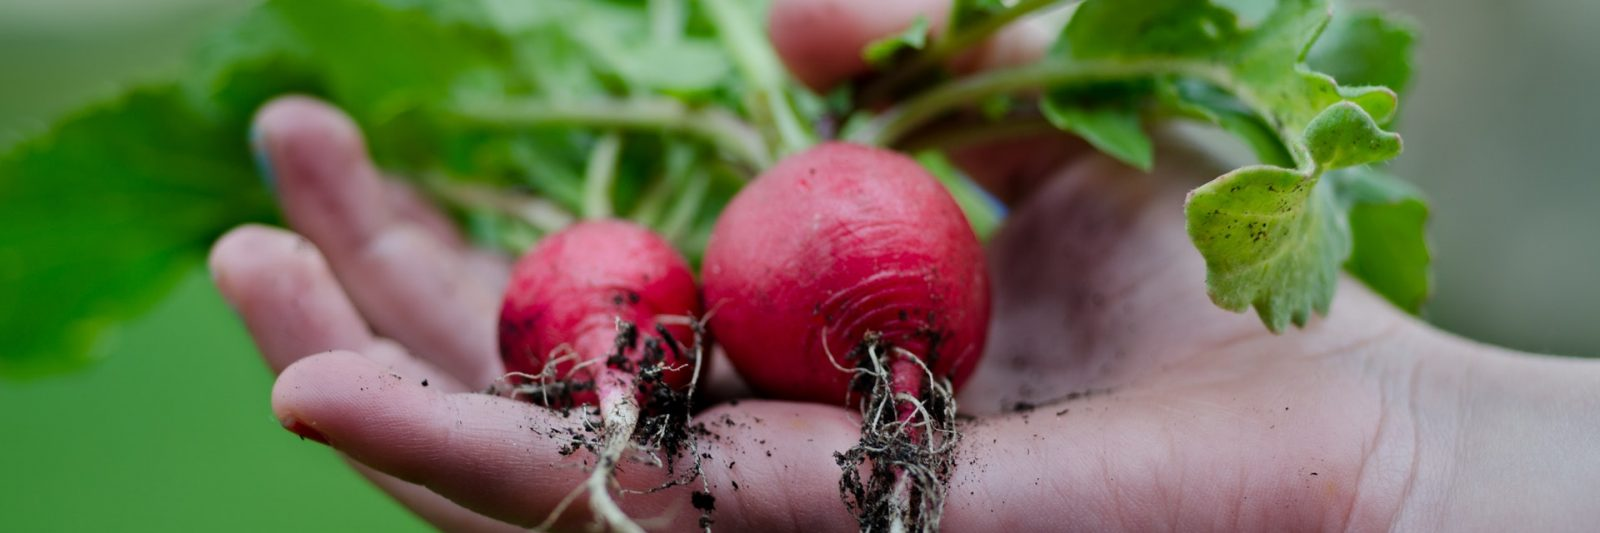 fresh-produce-radishes-farmers